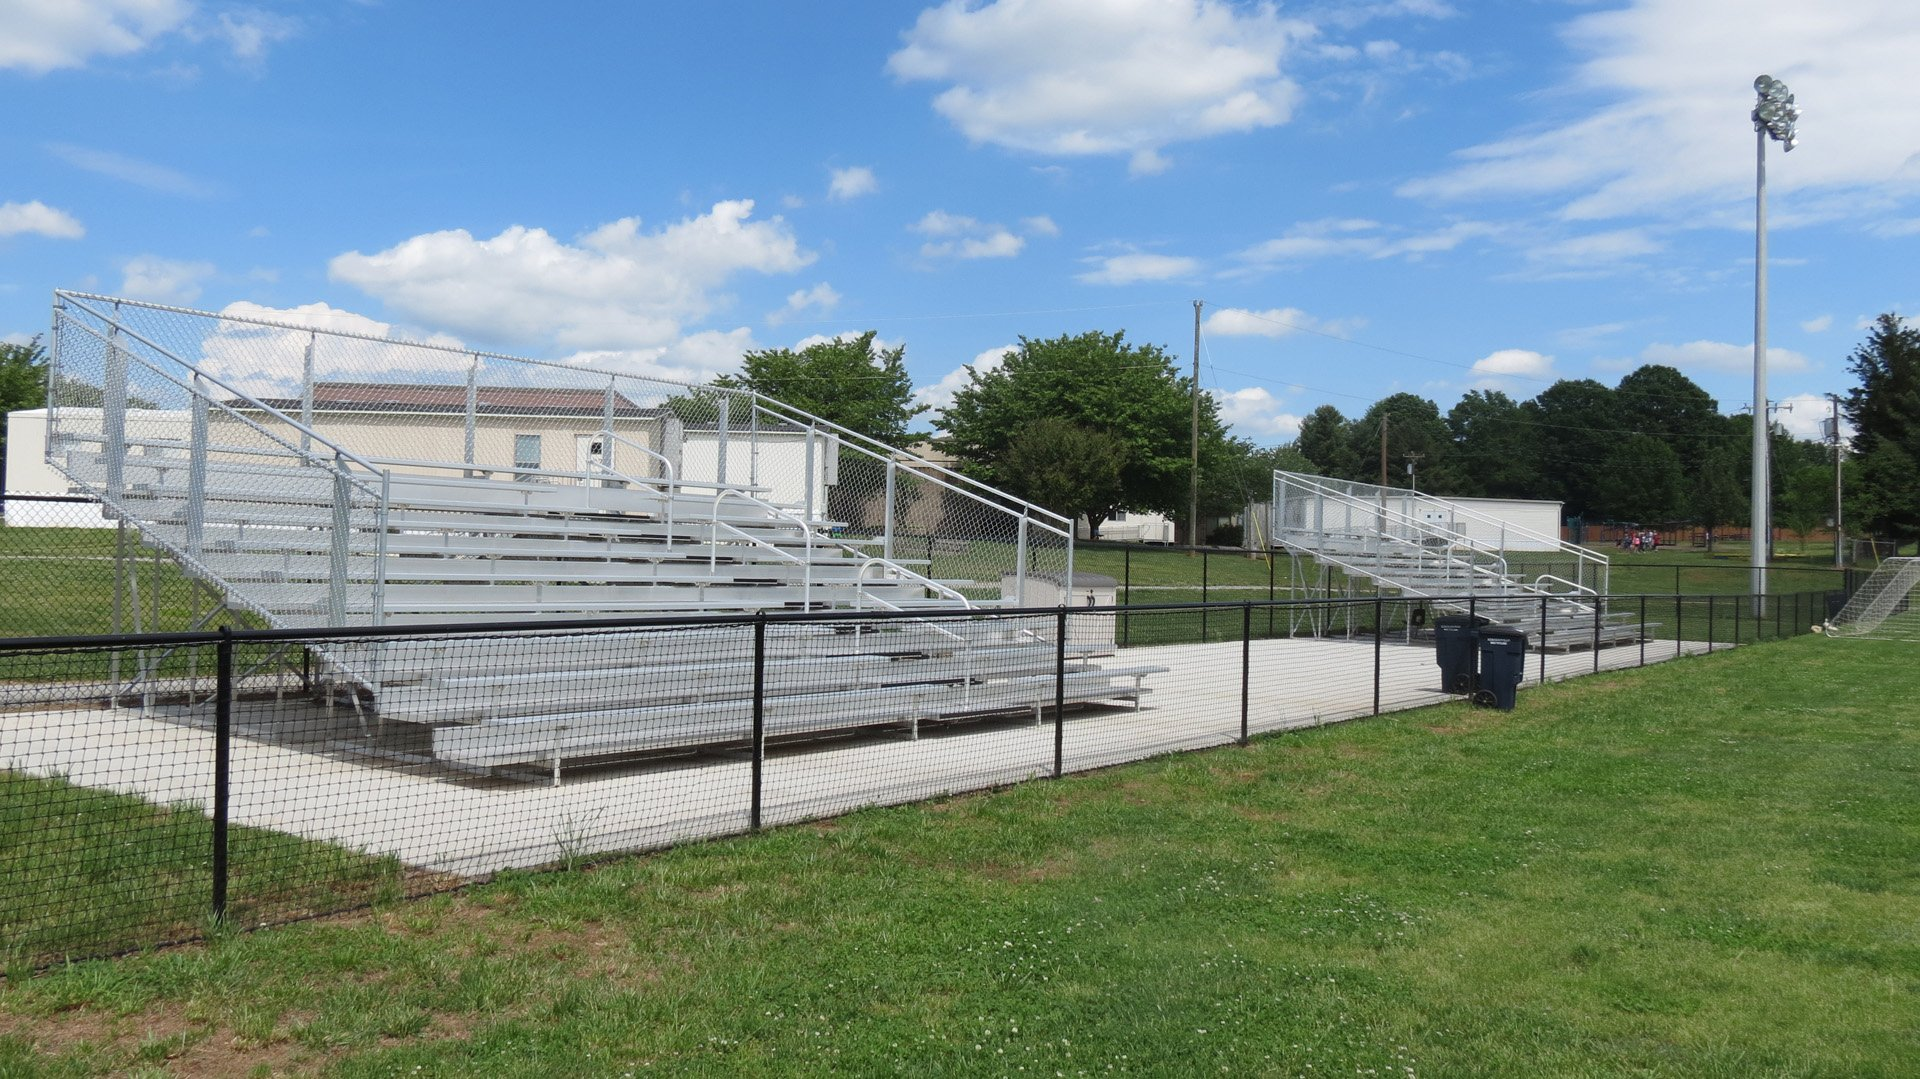 Picture of Bagley Sport Complex